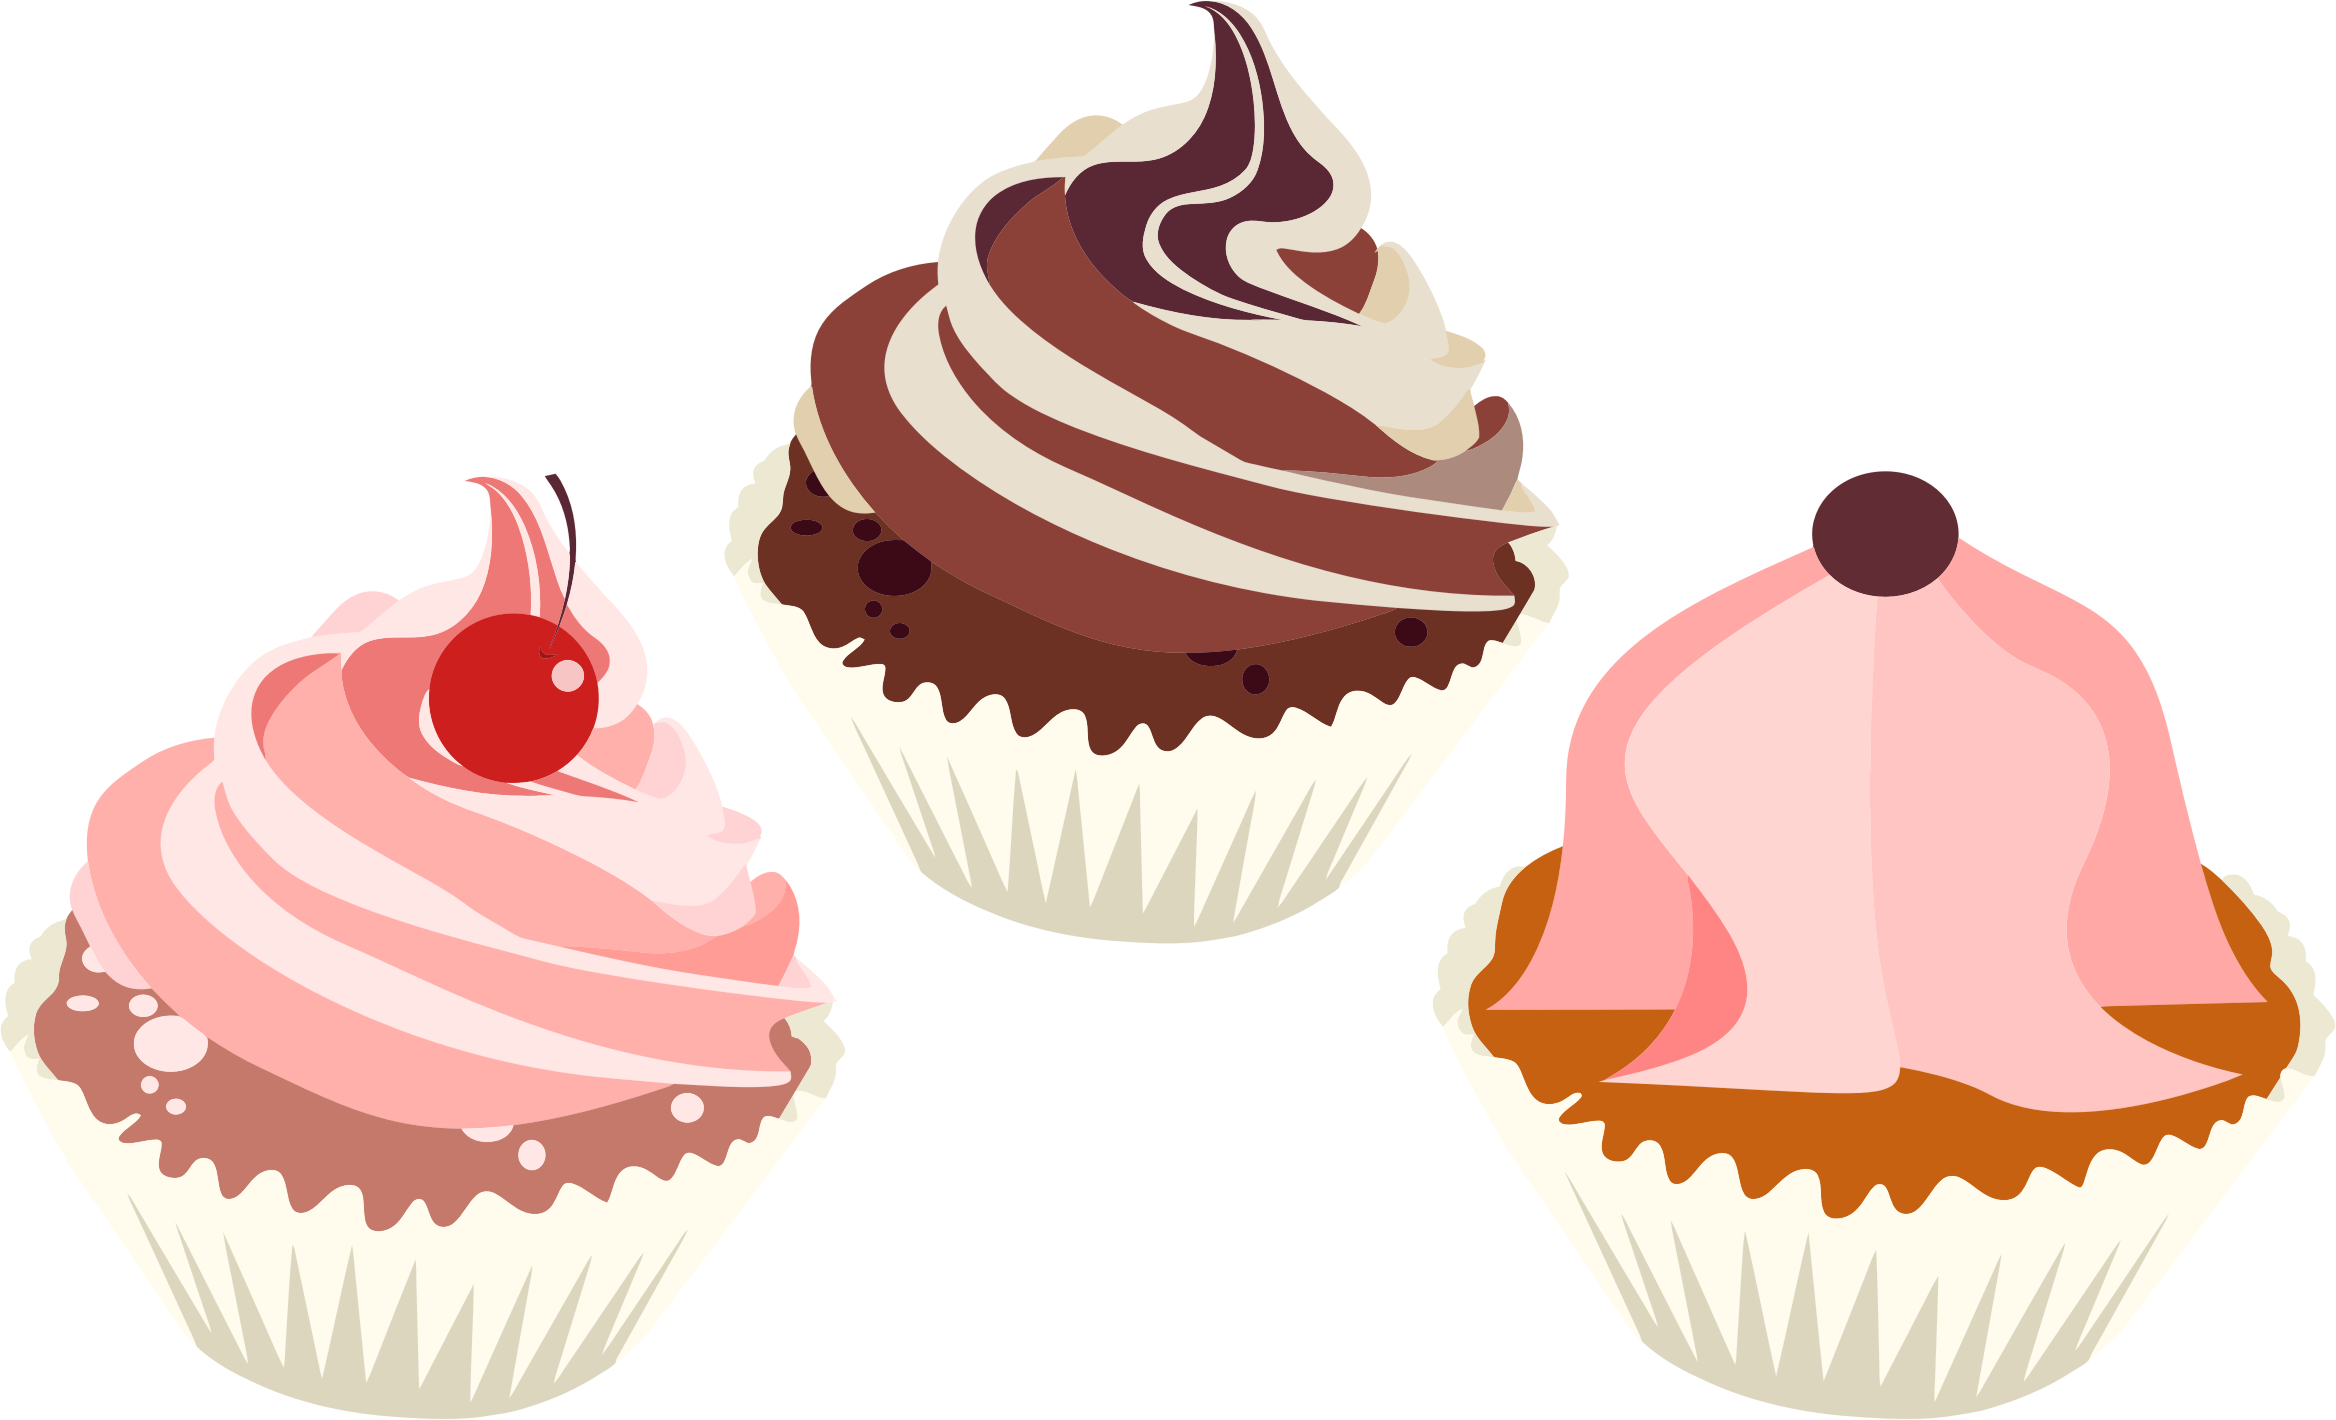 Cup cakes png. Three delicious cupcakes icons